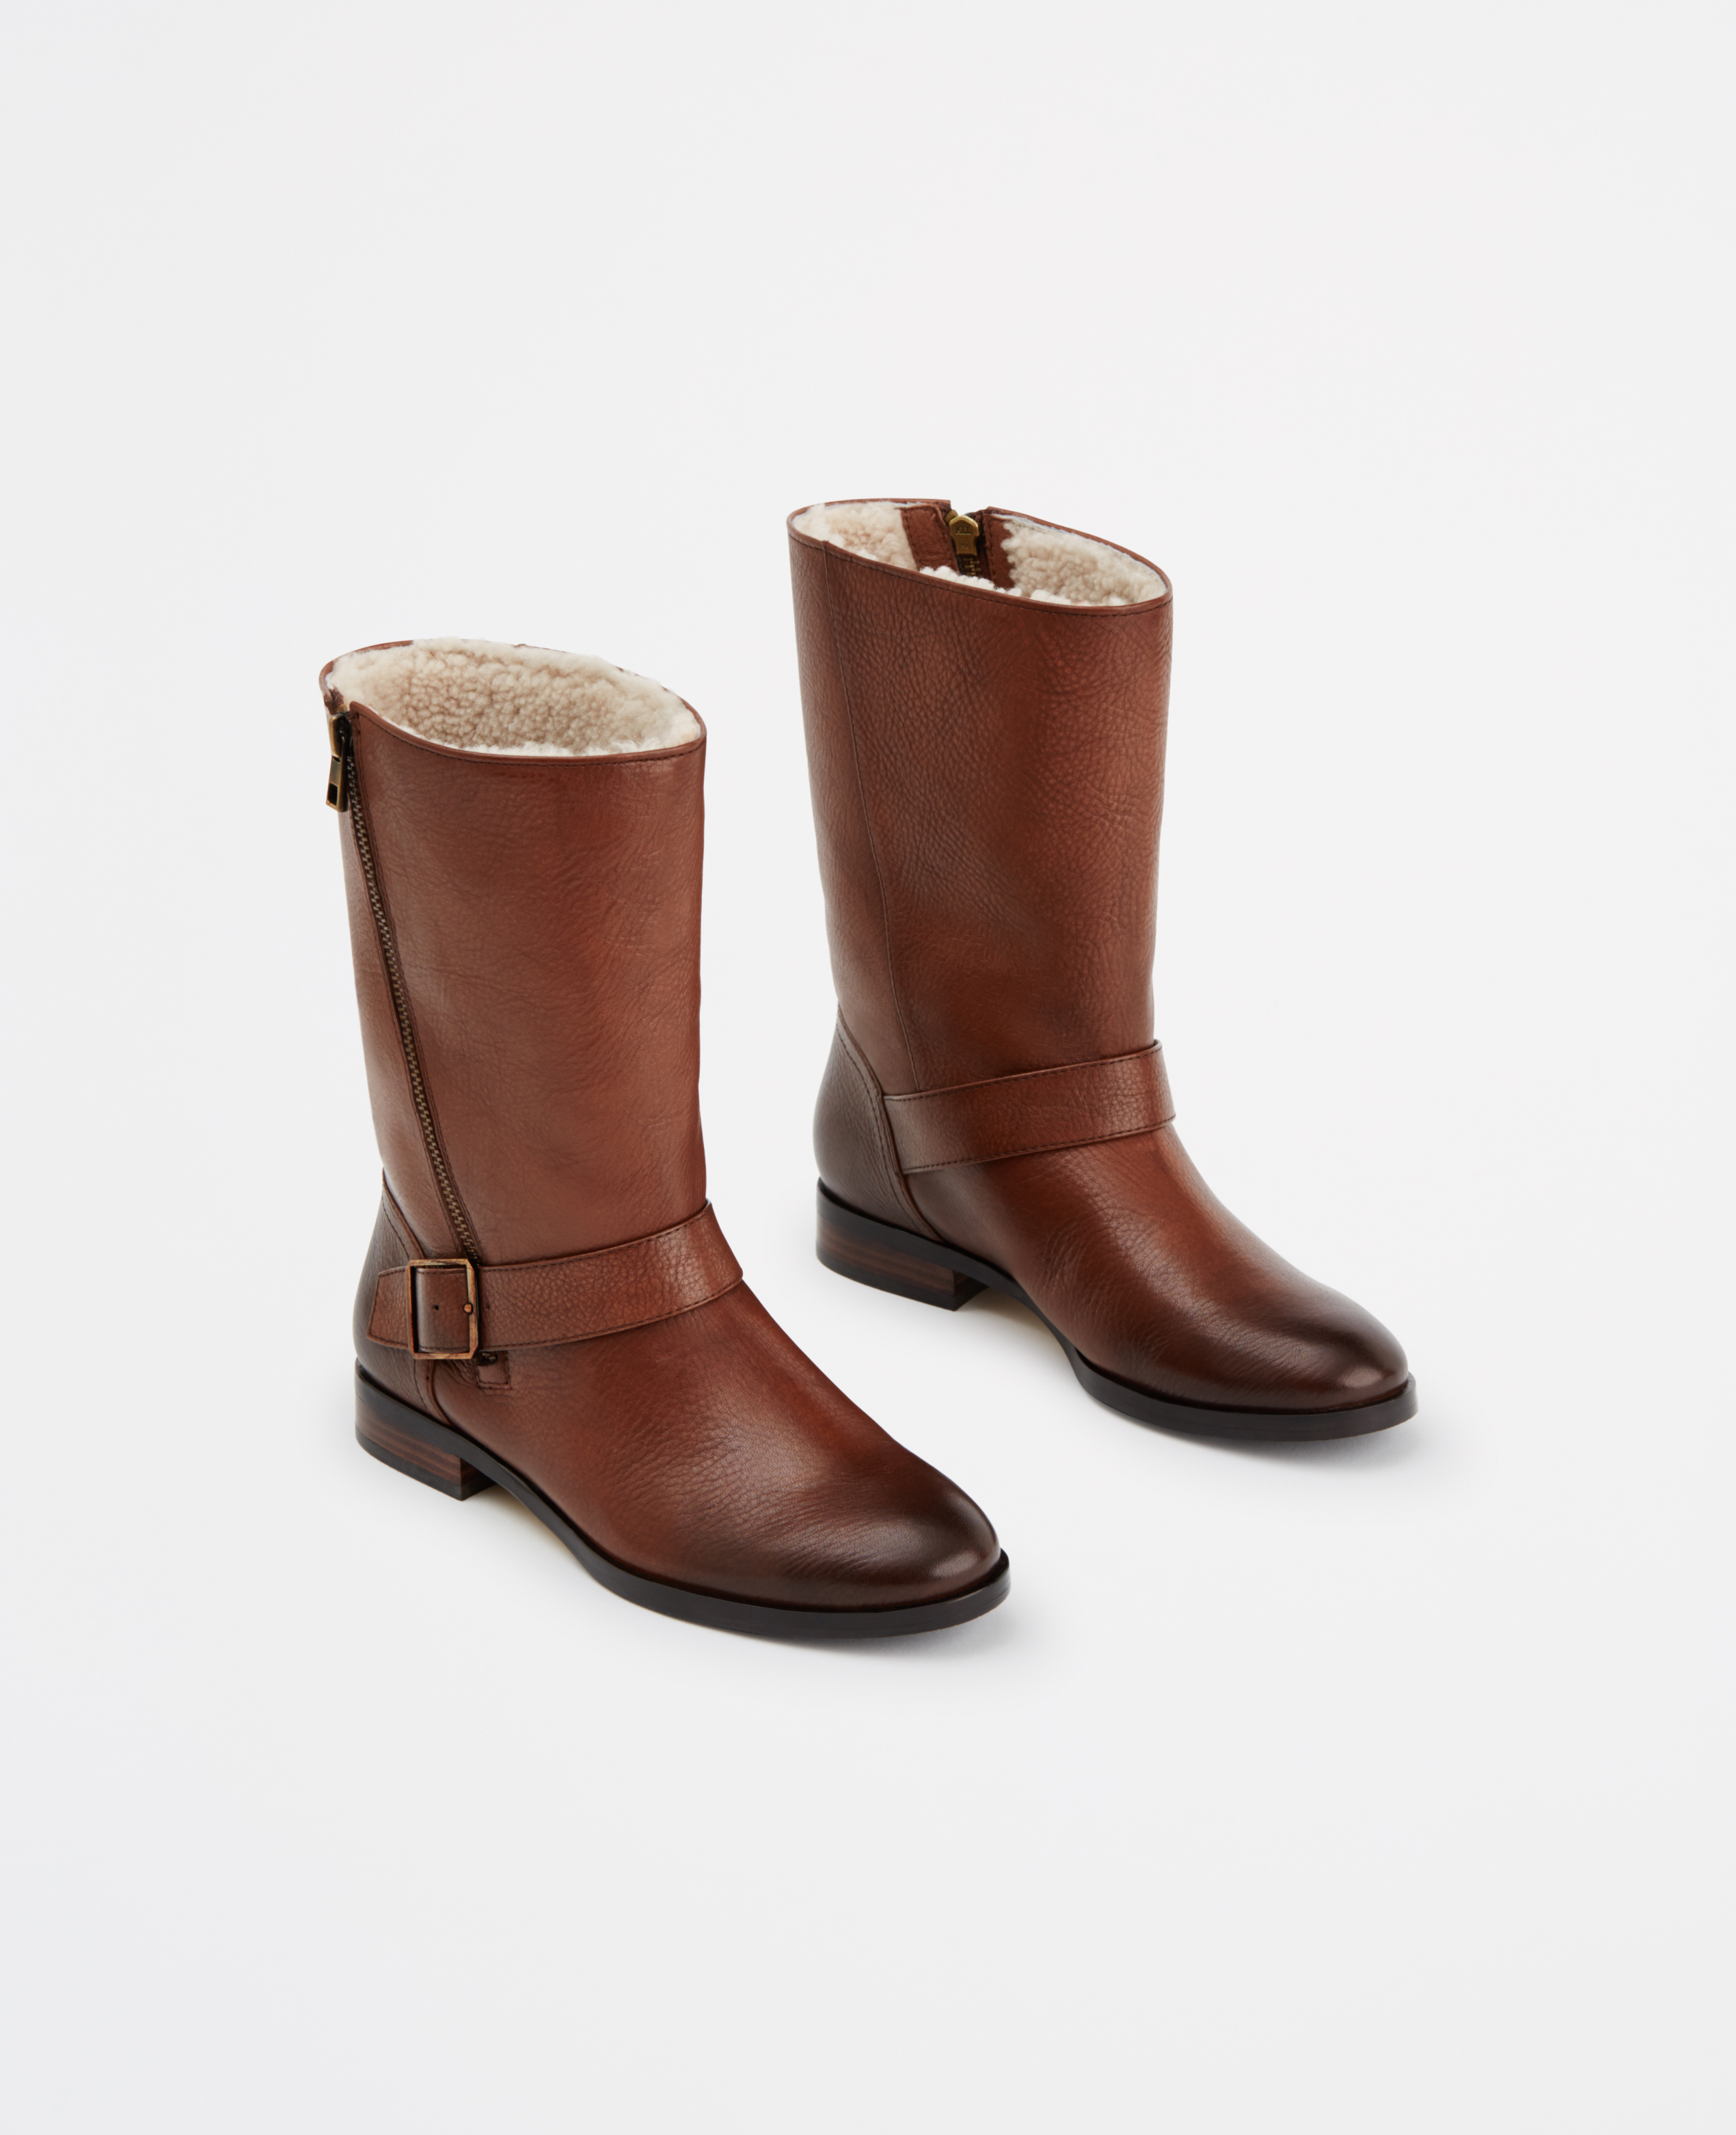 Ann taylor Janna Leather And Shearling Boots in Brown | Lyst